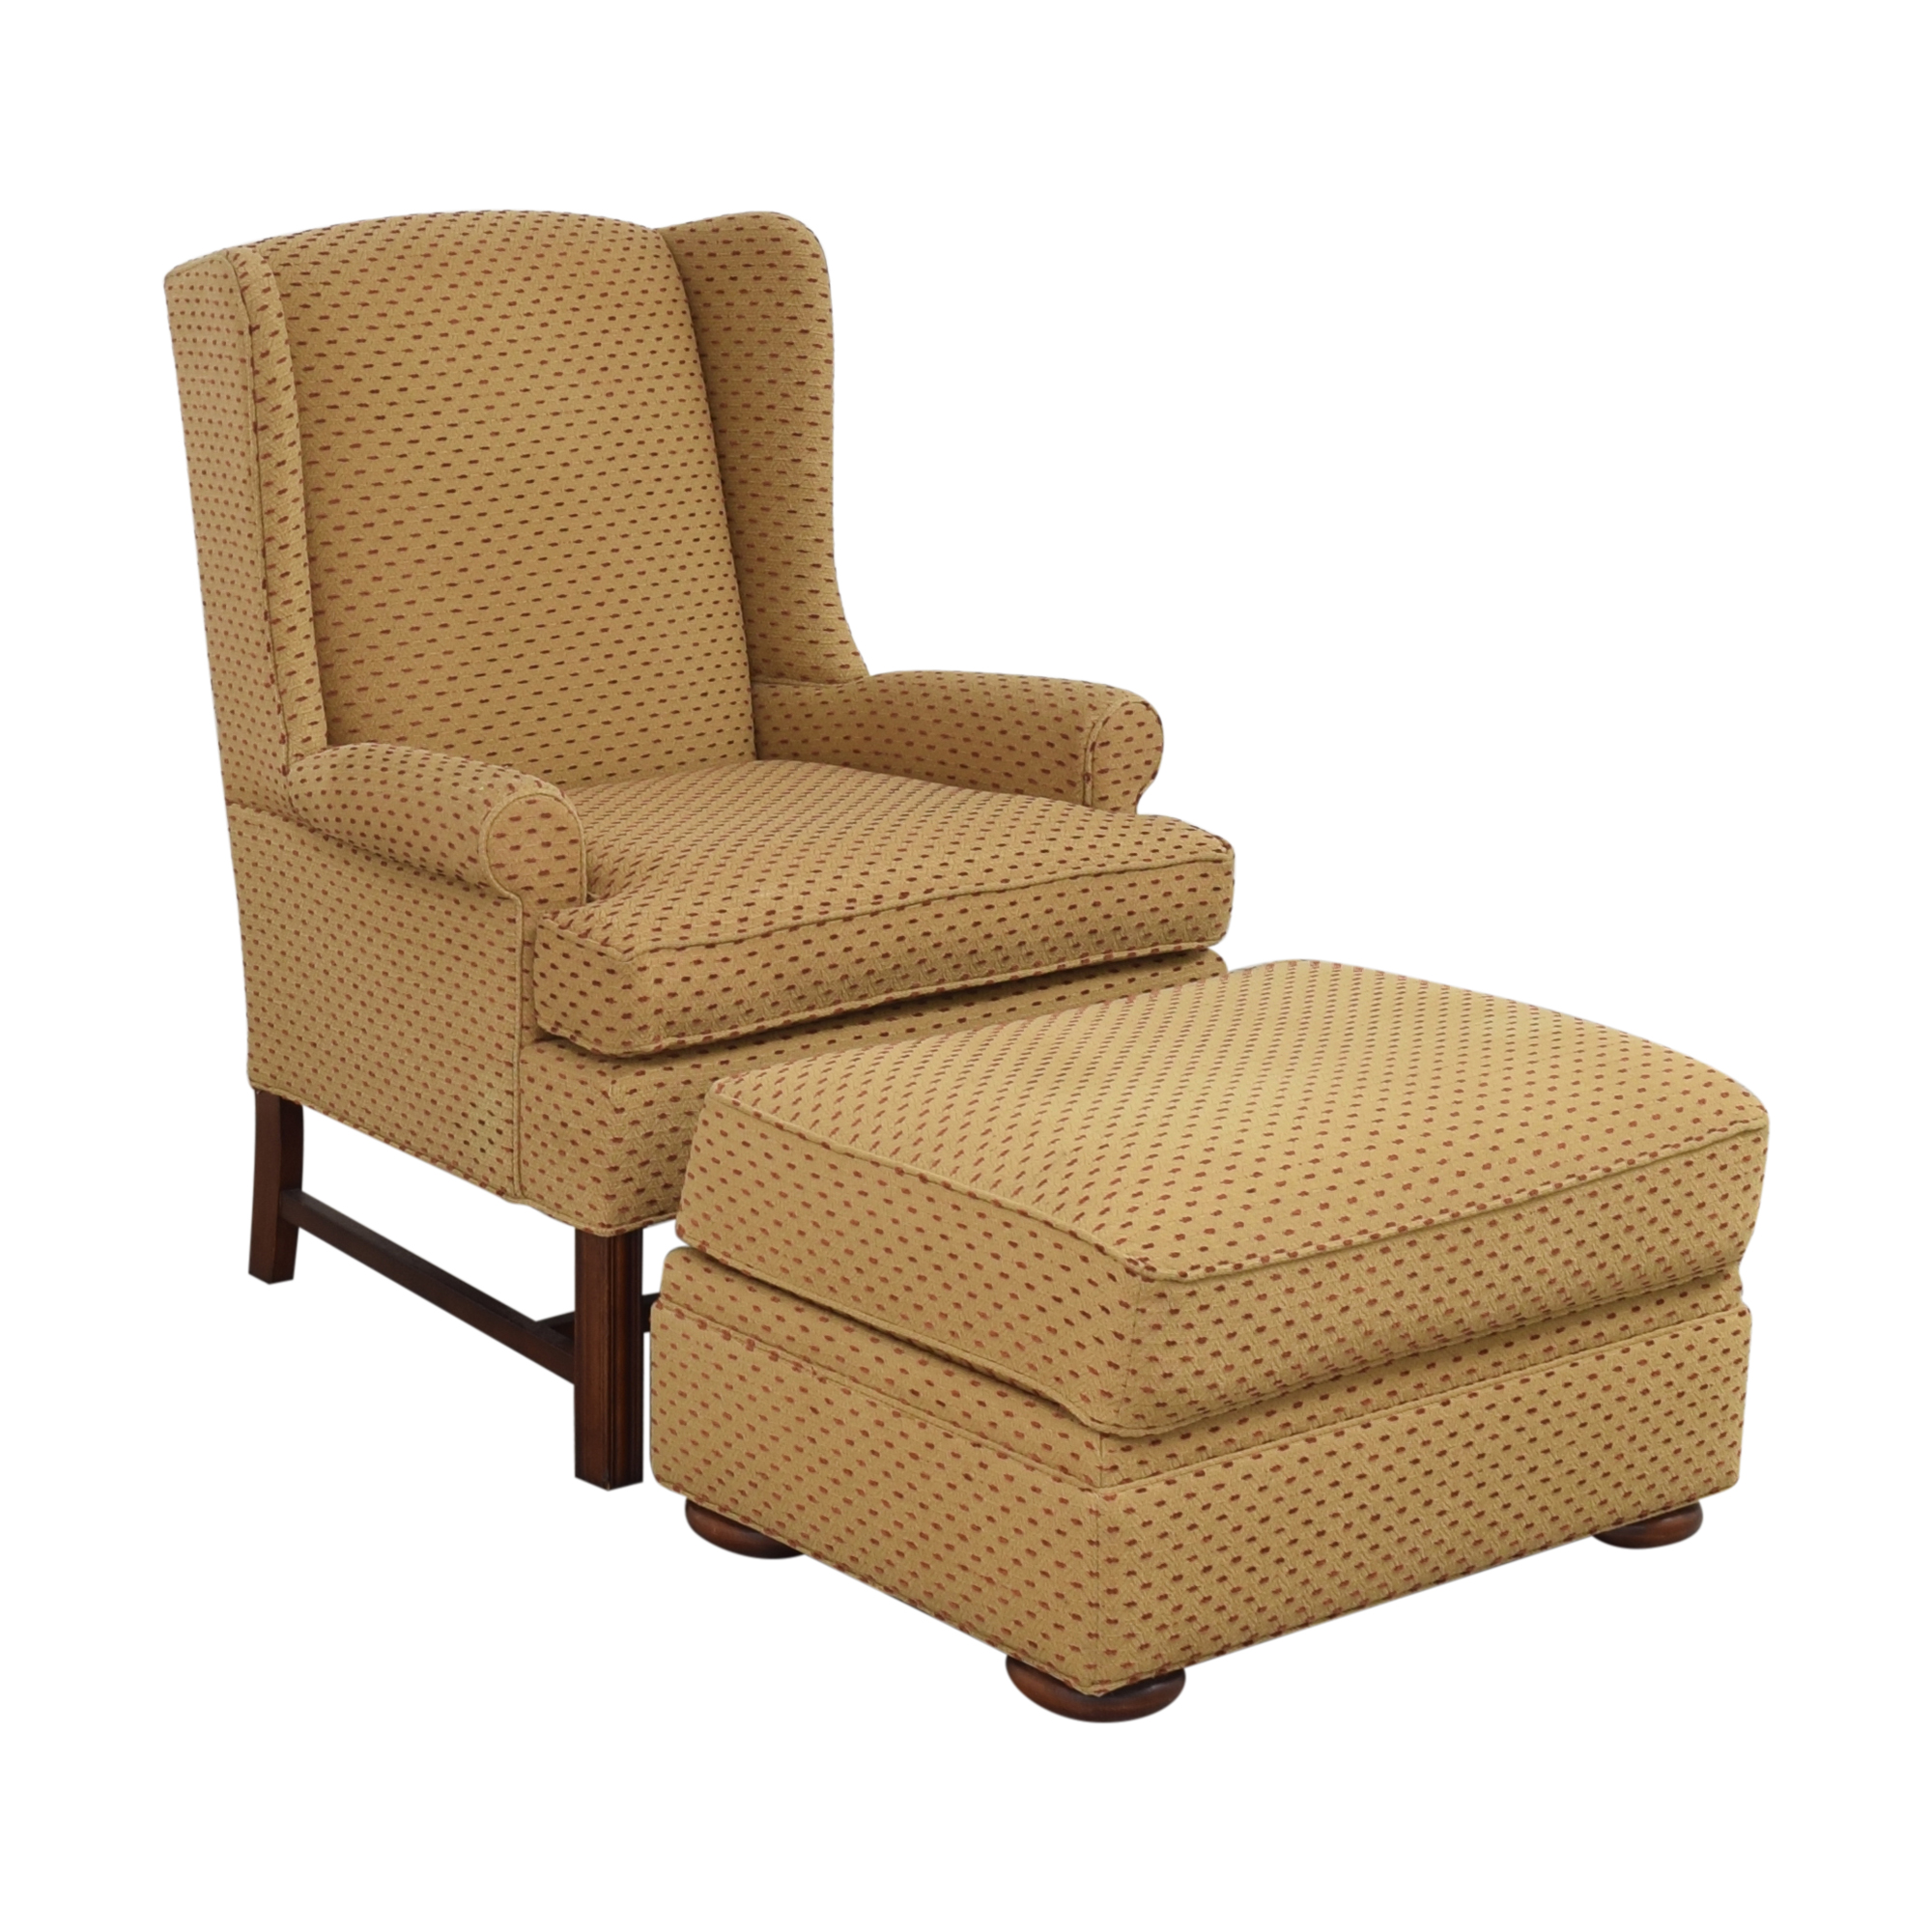 Thomasville Thomasville Accent Chair with Ottoman pa